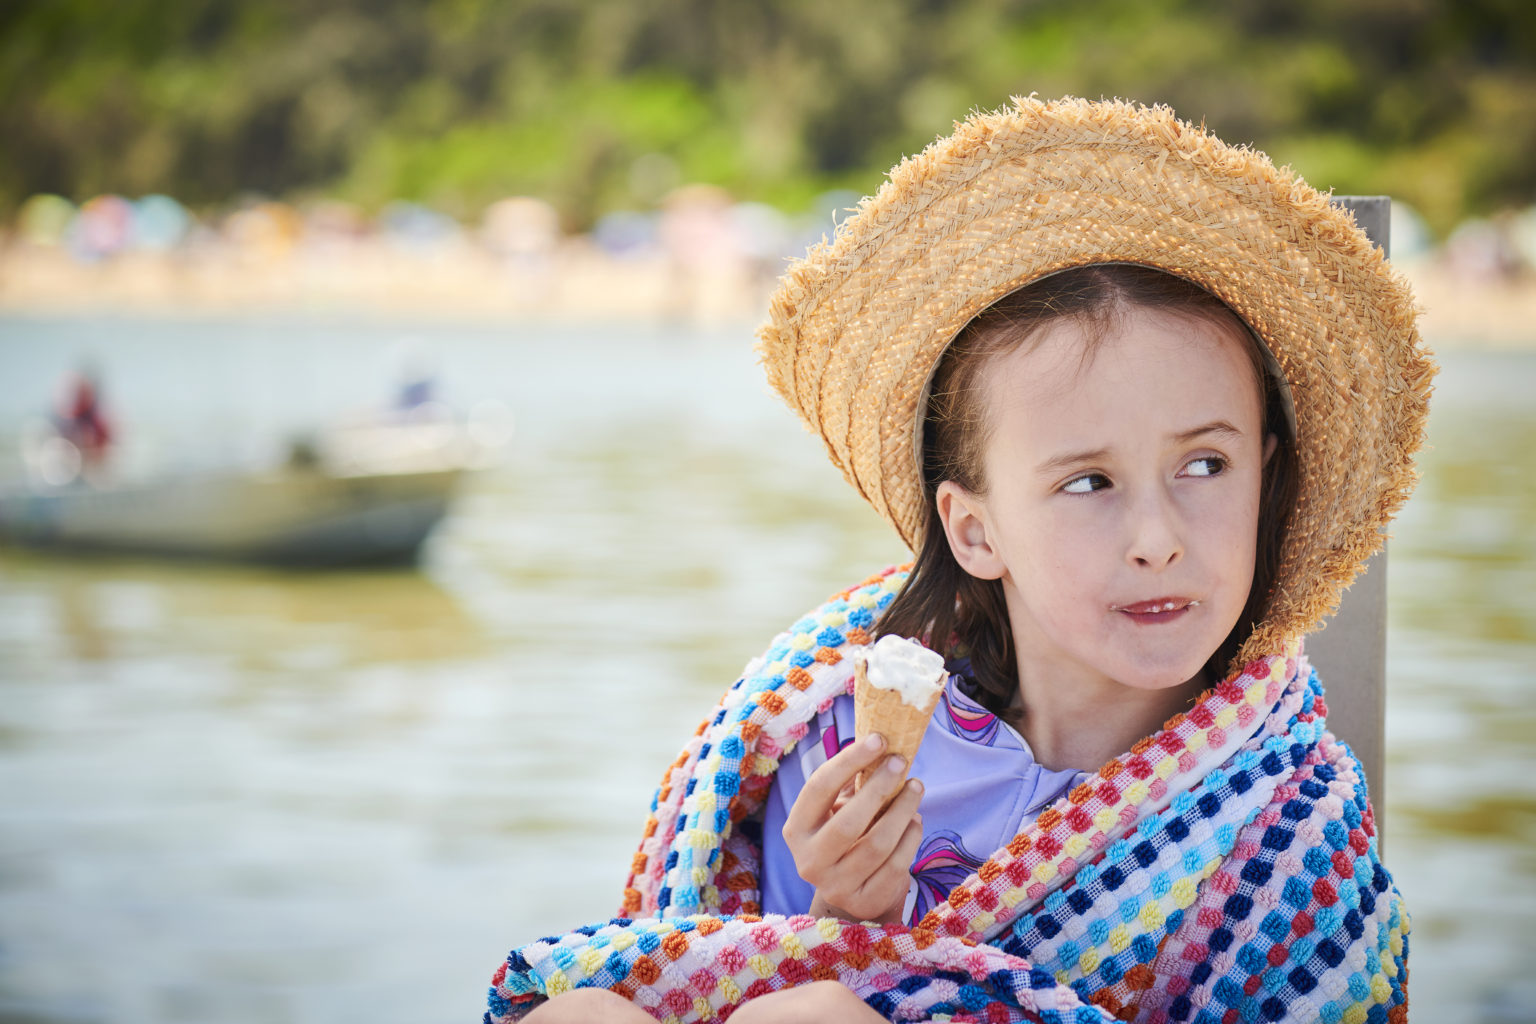 A young girl relaxing on the beach wrapped in a towel wearing a hat eating an icecream